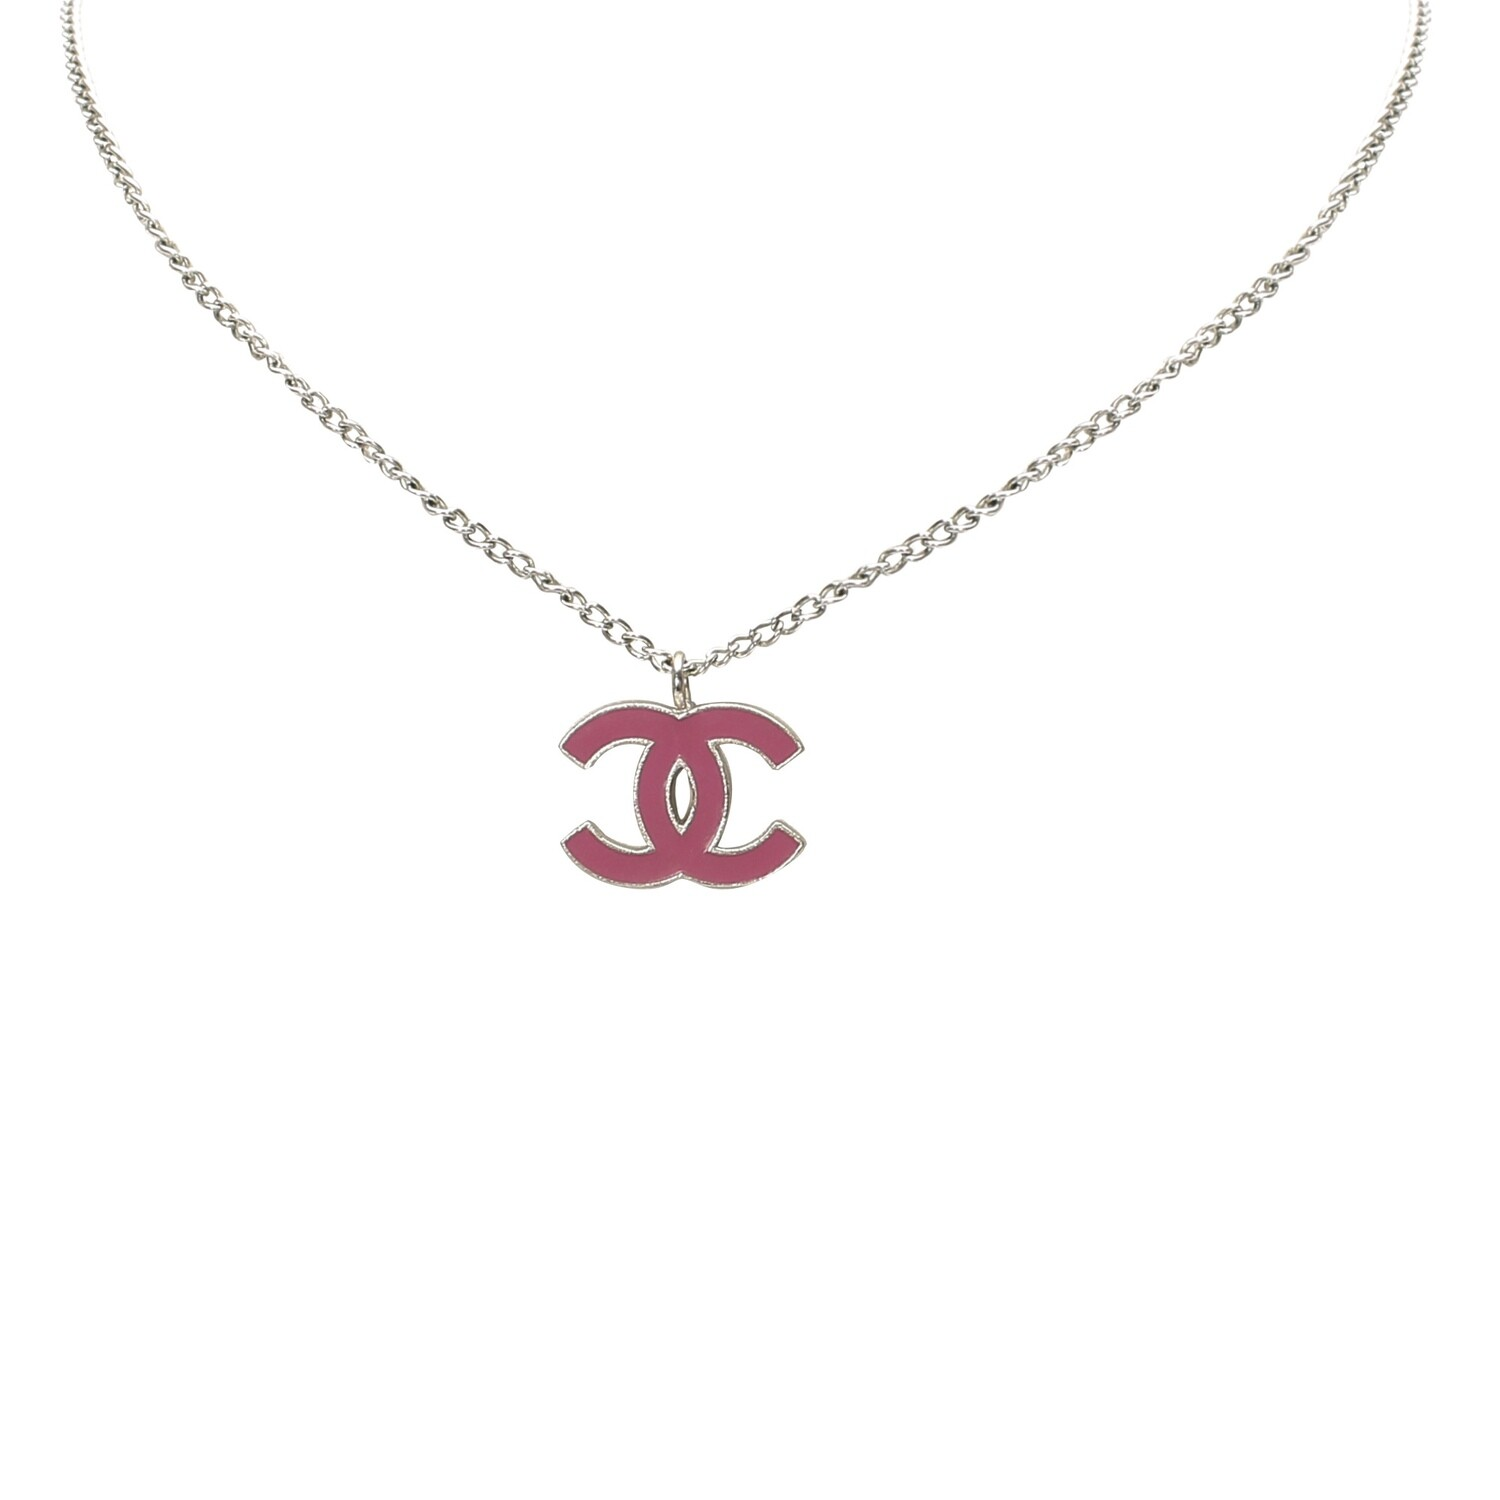 Pink CC Necklace